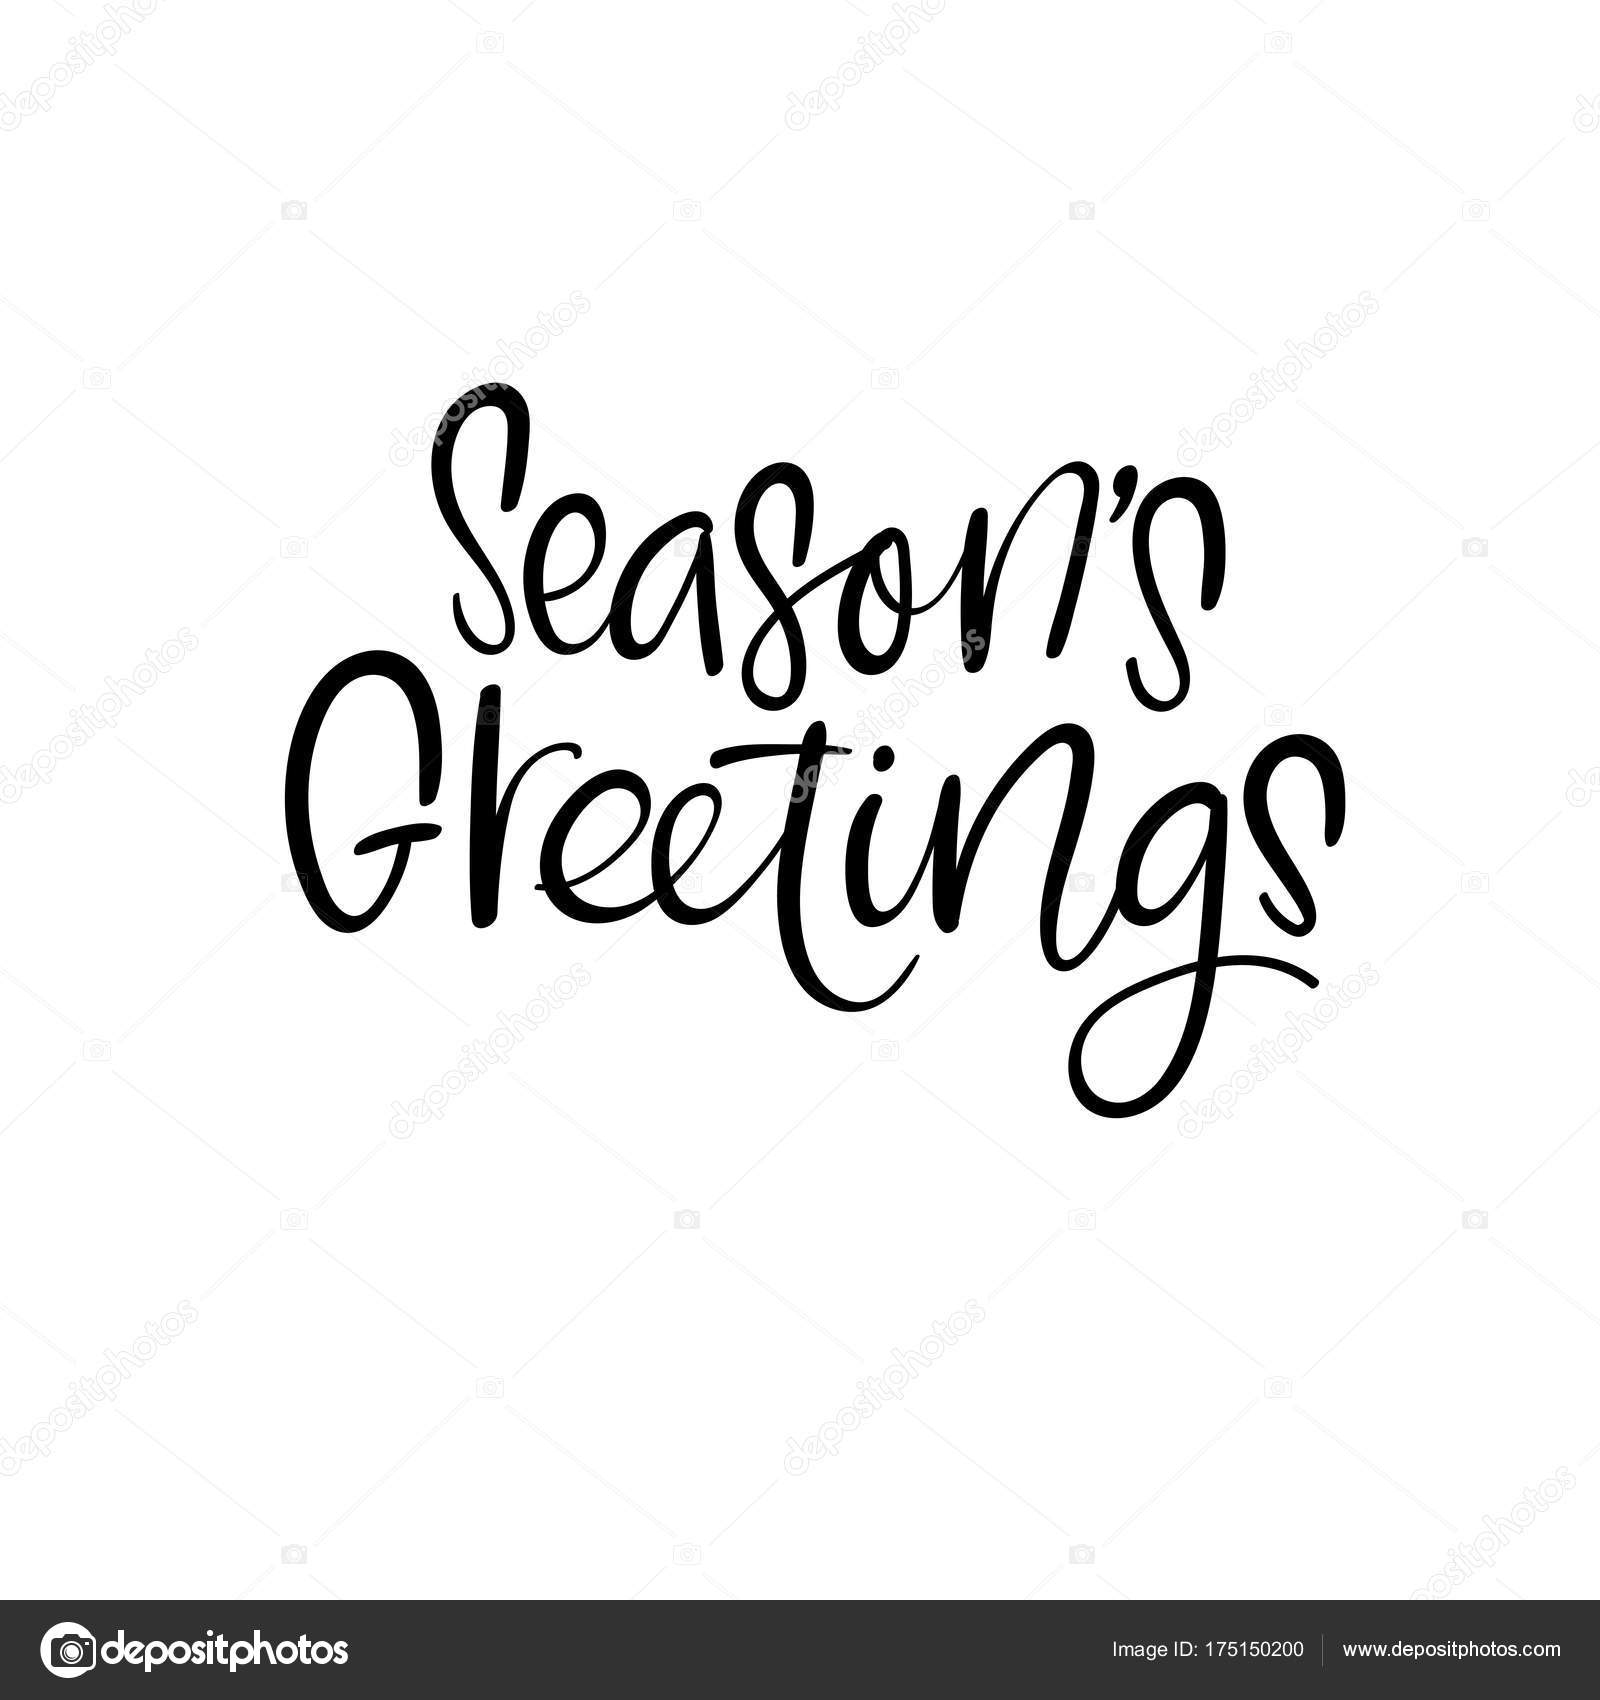 Seasons greetings christmas and happy new year cards modern seasons greetings christmas calligraphy handwritten brush lettering for greeting card poster invitation banner hand drawn design elements m4hsunfo